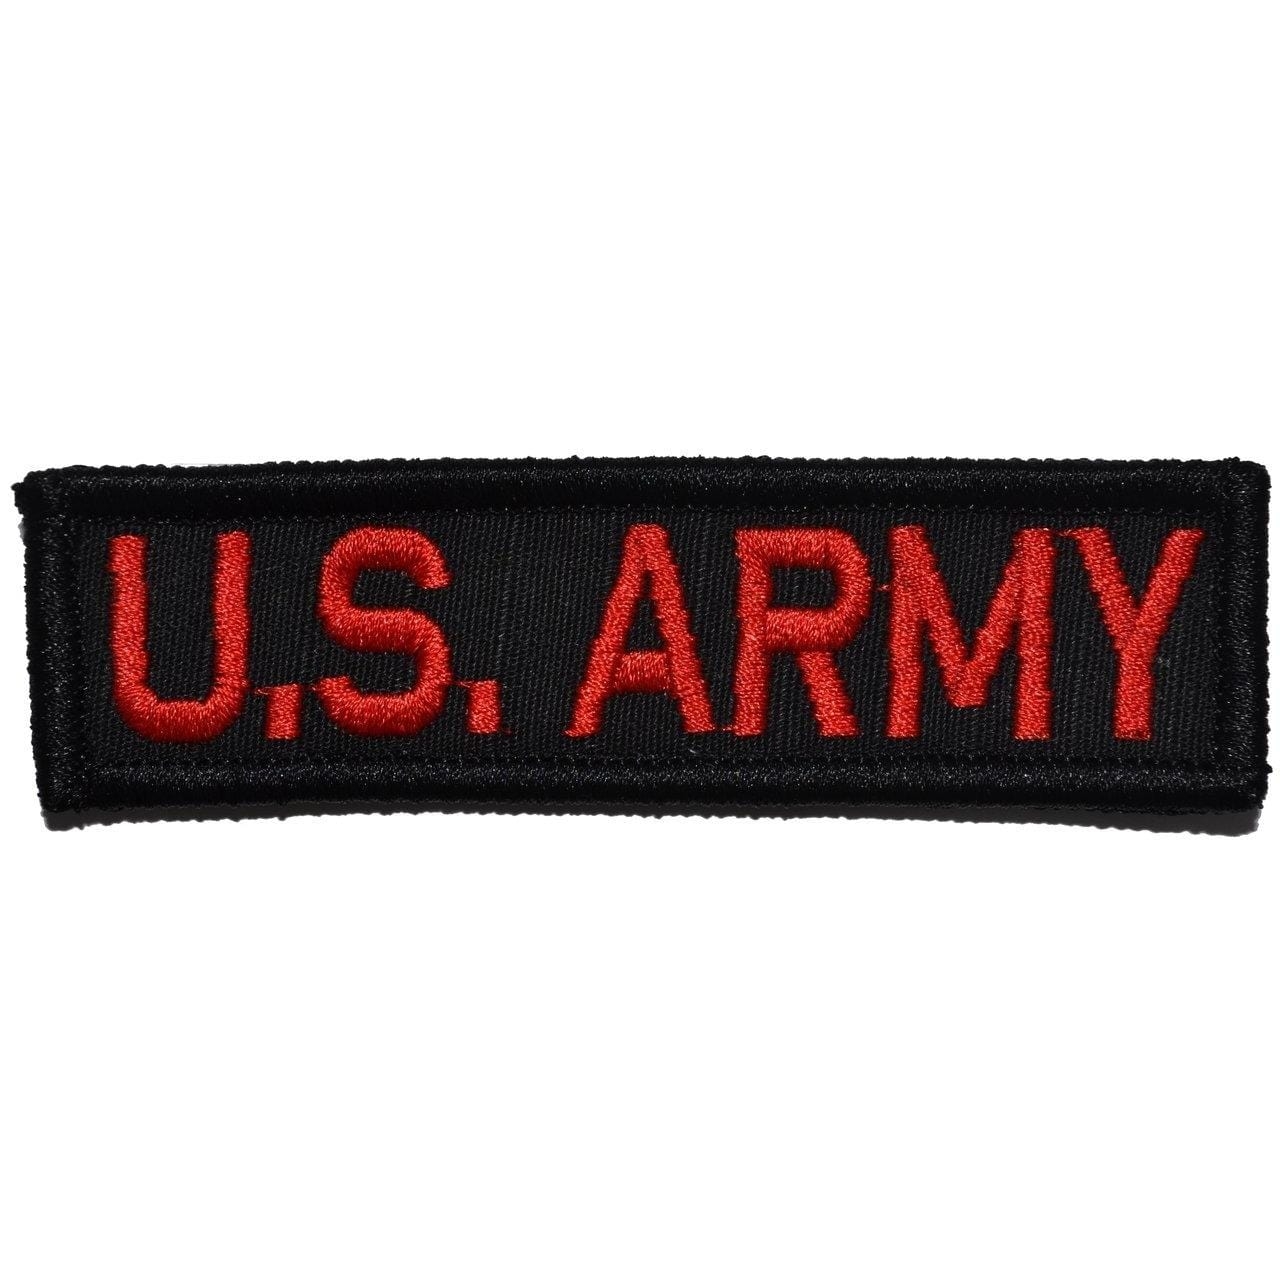 Tactical Gear Junkie Patches Black w/ Red U.S. Army - 1x3.75 Patch